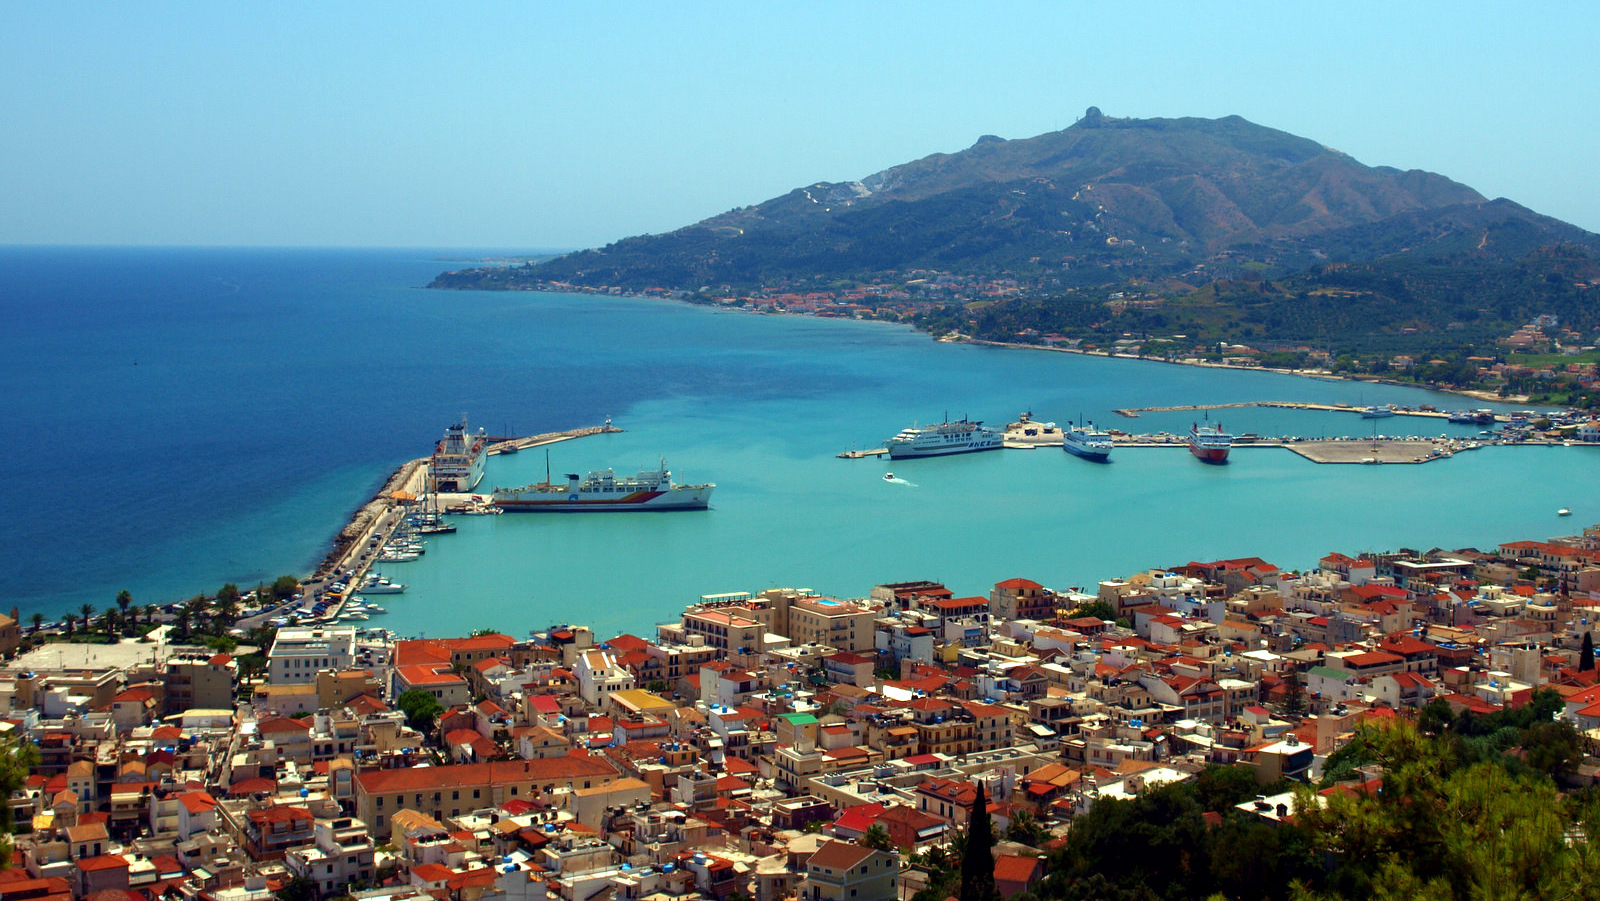 Just 2 km from Zakynthos Town, at the top of the hill is Bochali. Overlooking the port, neighbourhoods and streets below (as well as Argasi to the...